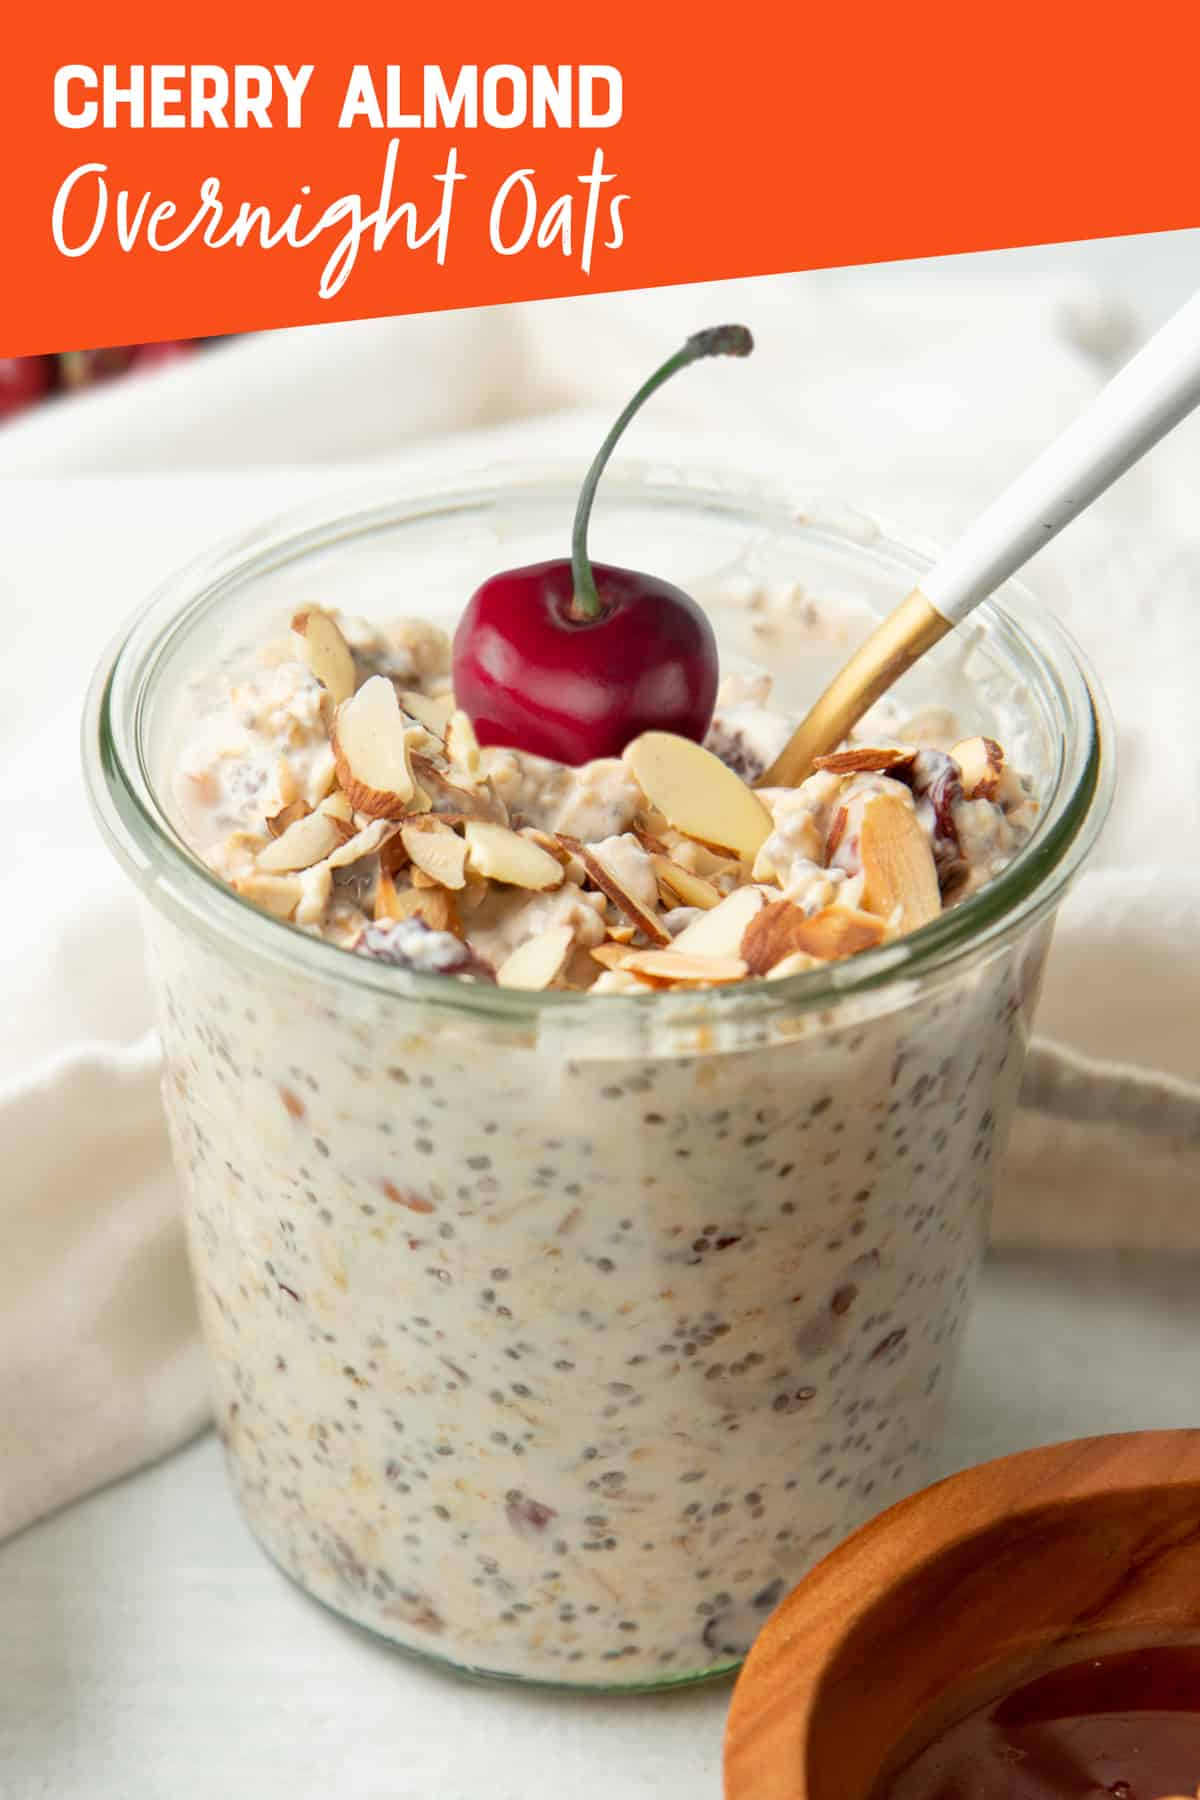 "A spoon rests in a glass jar of cherry and almond overnight oats. The oats are garnished with a whole fresh cherry. A text overlay reads ""Cherry Almond Overnight Oats."""